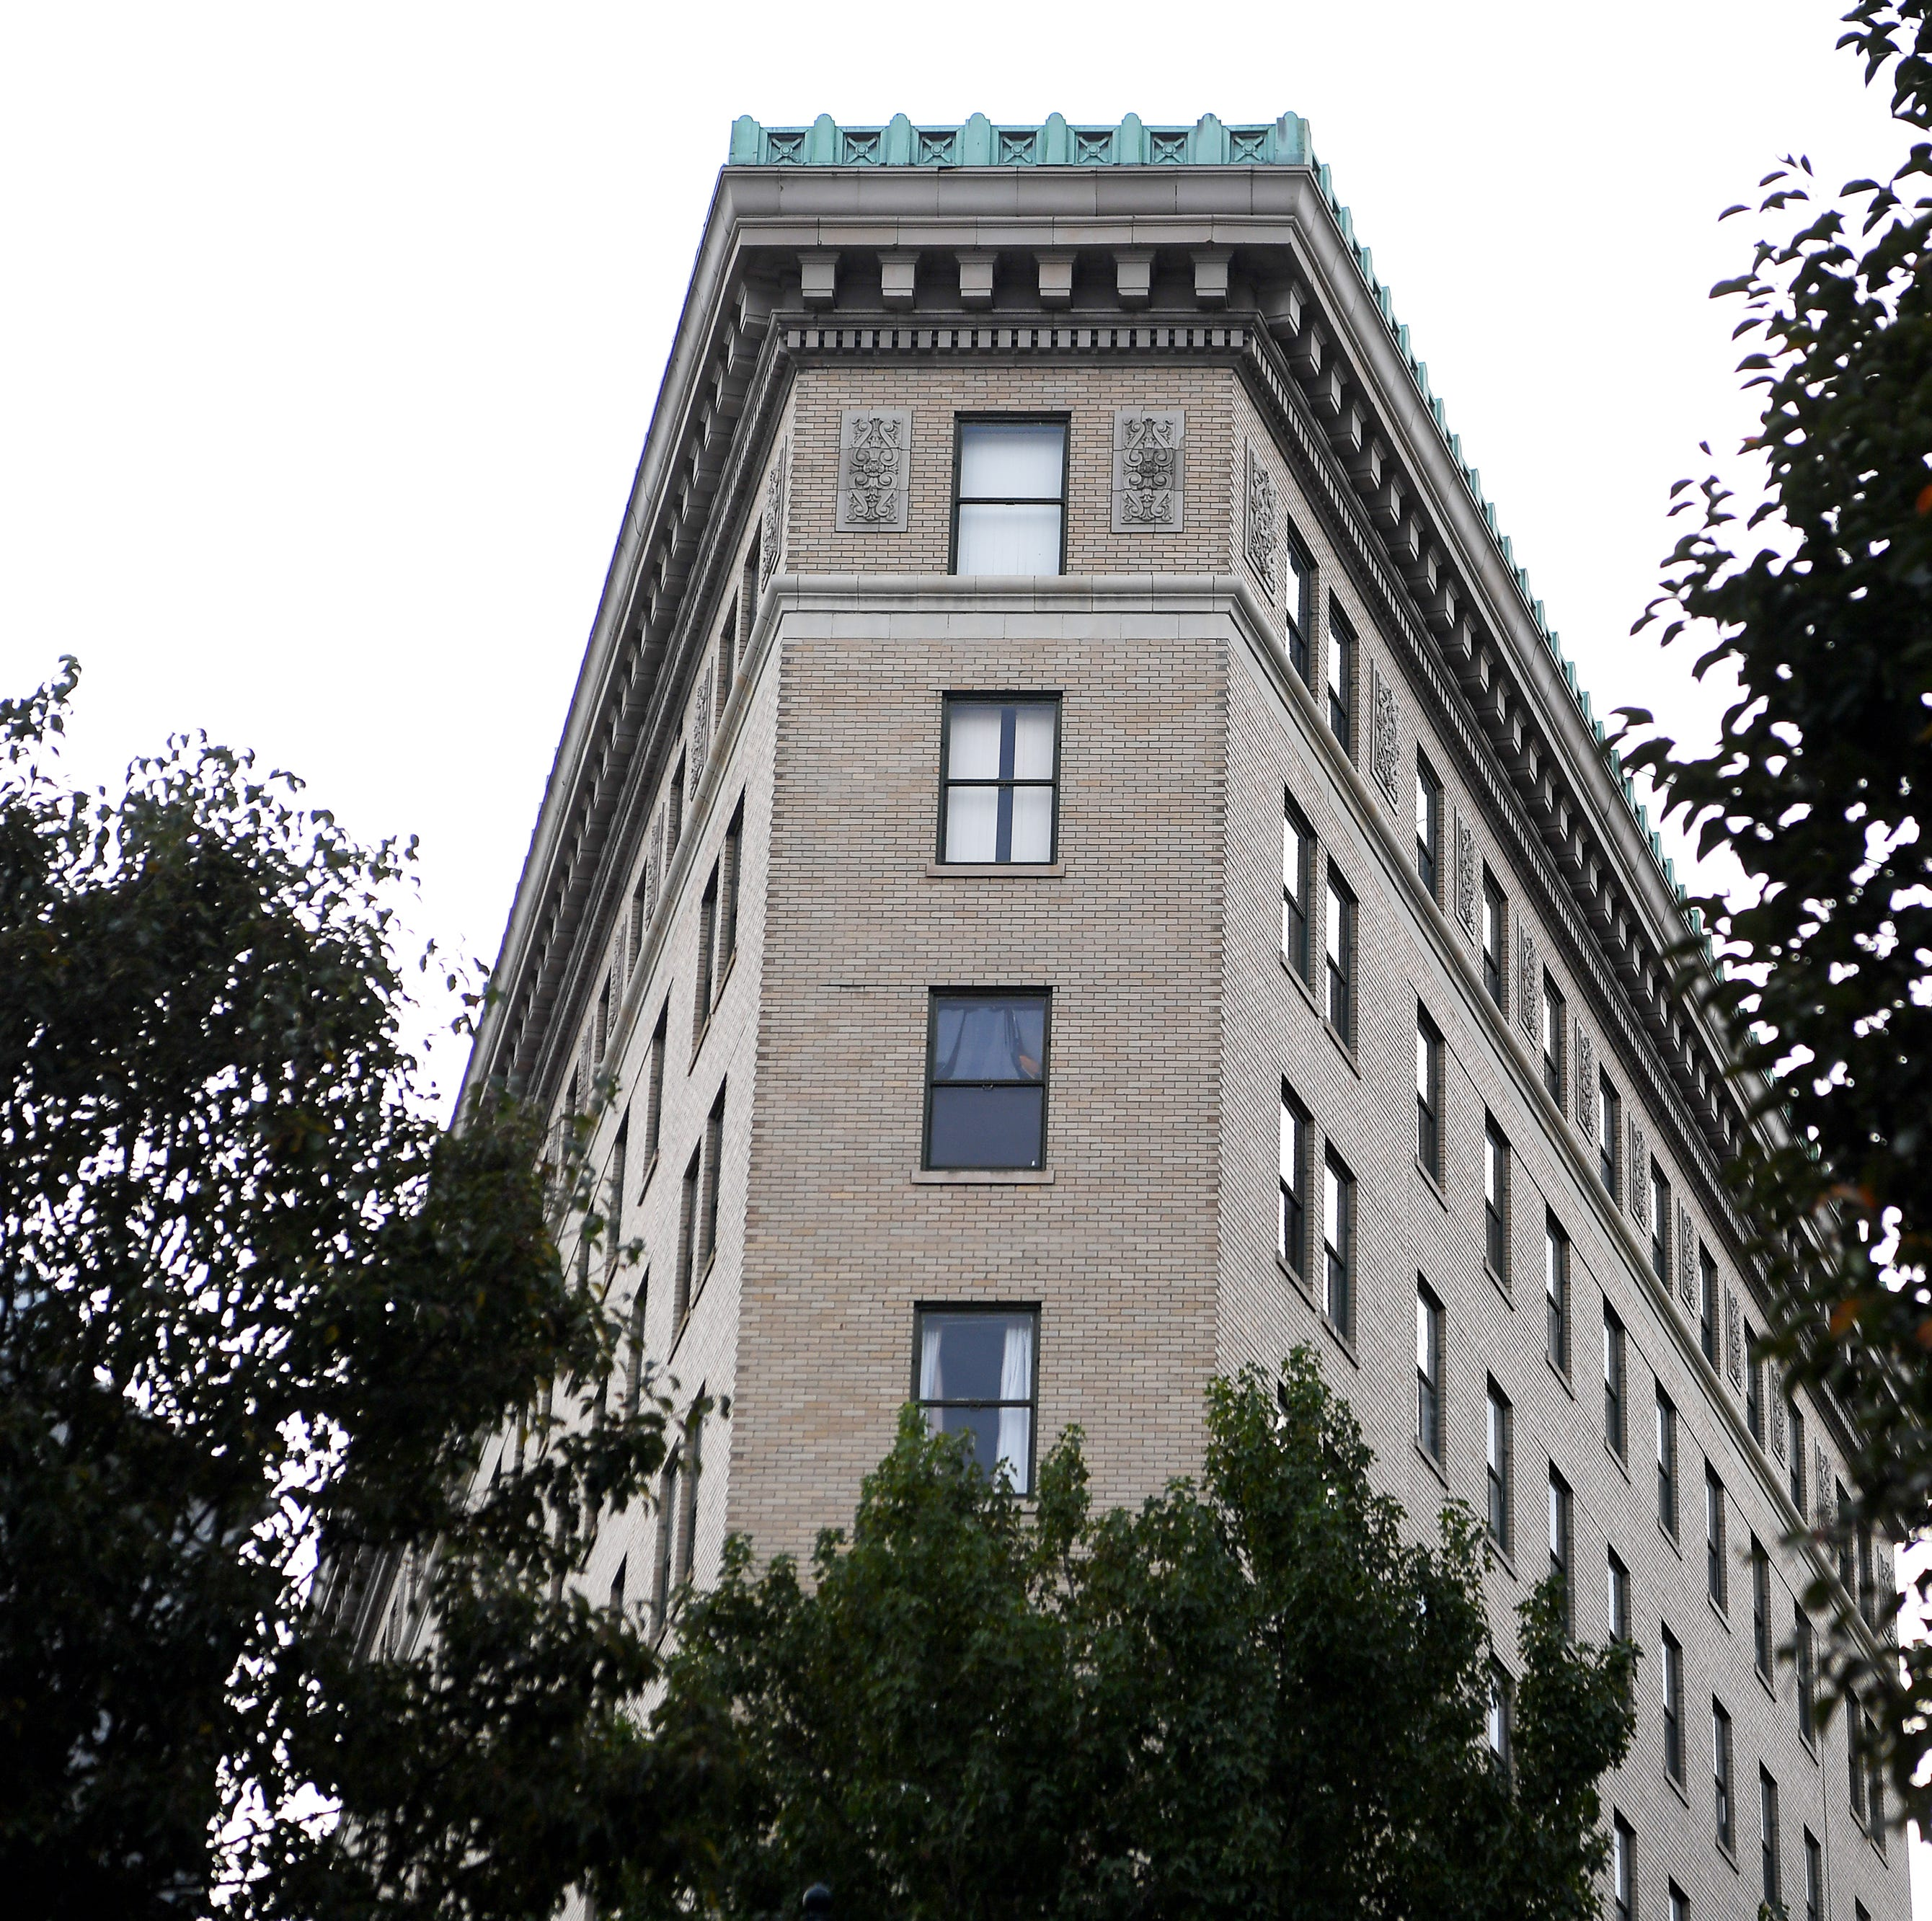 Asheville Flatiron Hotel proposal, facing council rejection, withdrawn prior to vote